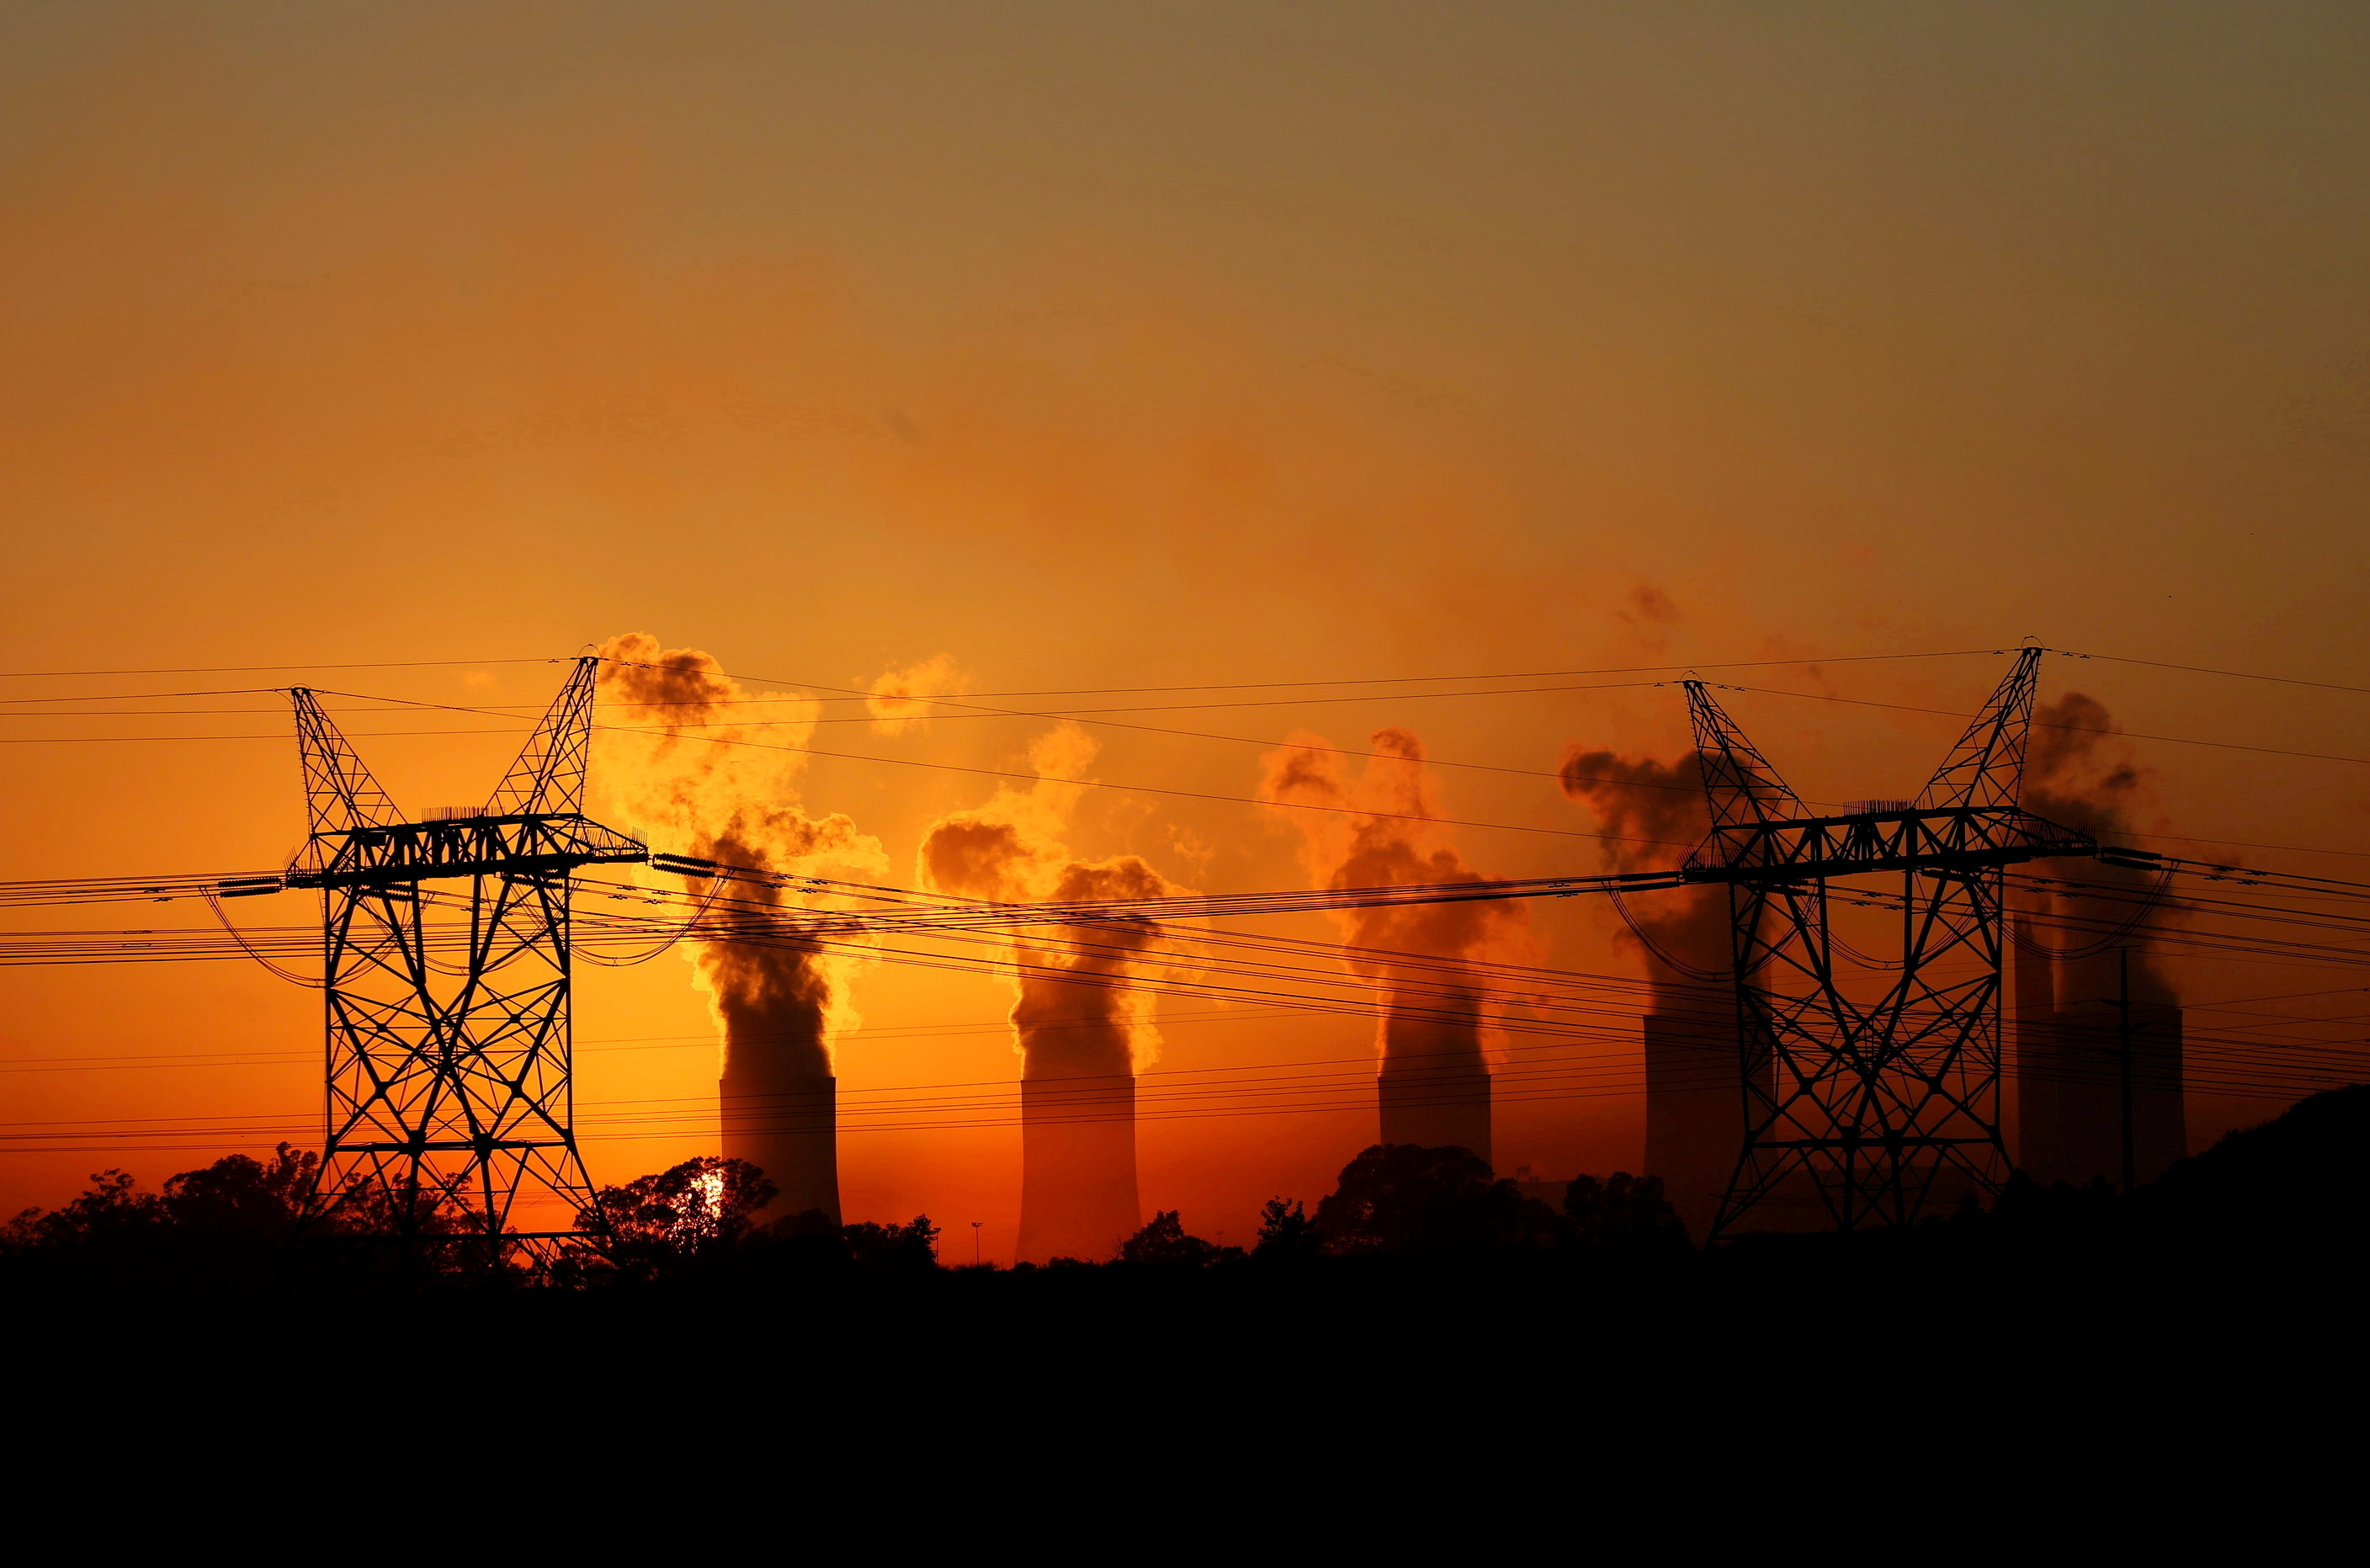 Electricity pylons are seen in front of the cooling towers at the Lethabo Thermal Power Station,an Eskom coal-burning power station near Sasolburg in the northern Free State province, March 2, 2016. REUTERS/Siphiwe Sibeko/File Photo/File Photo